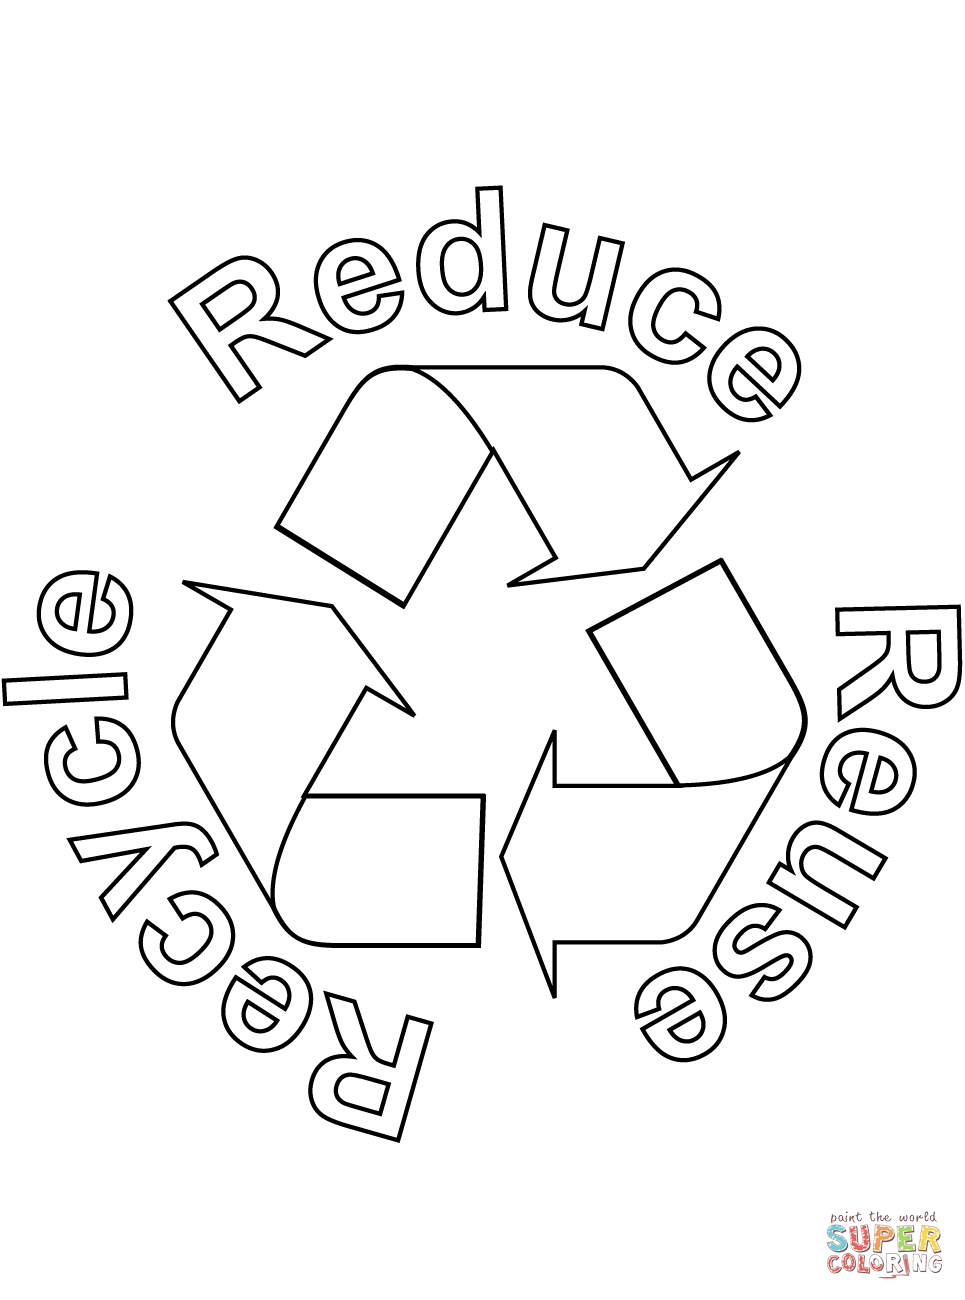 recycling-coloring-page-0023-q1